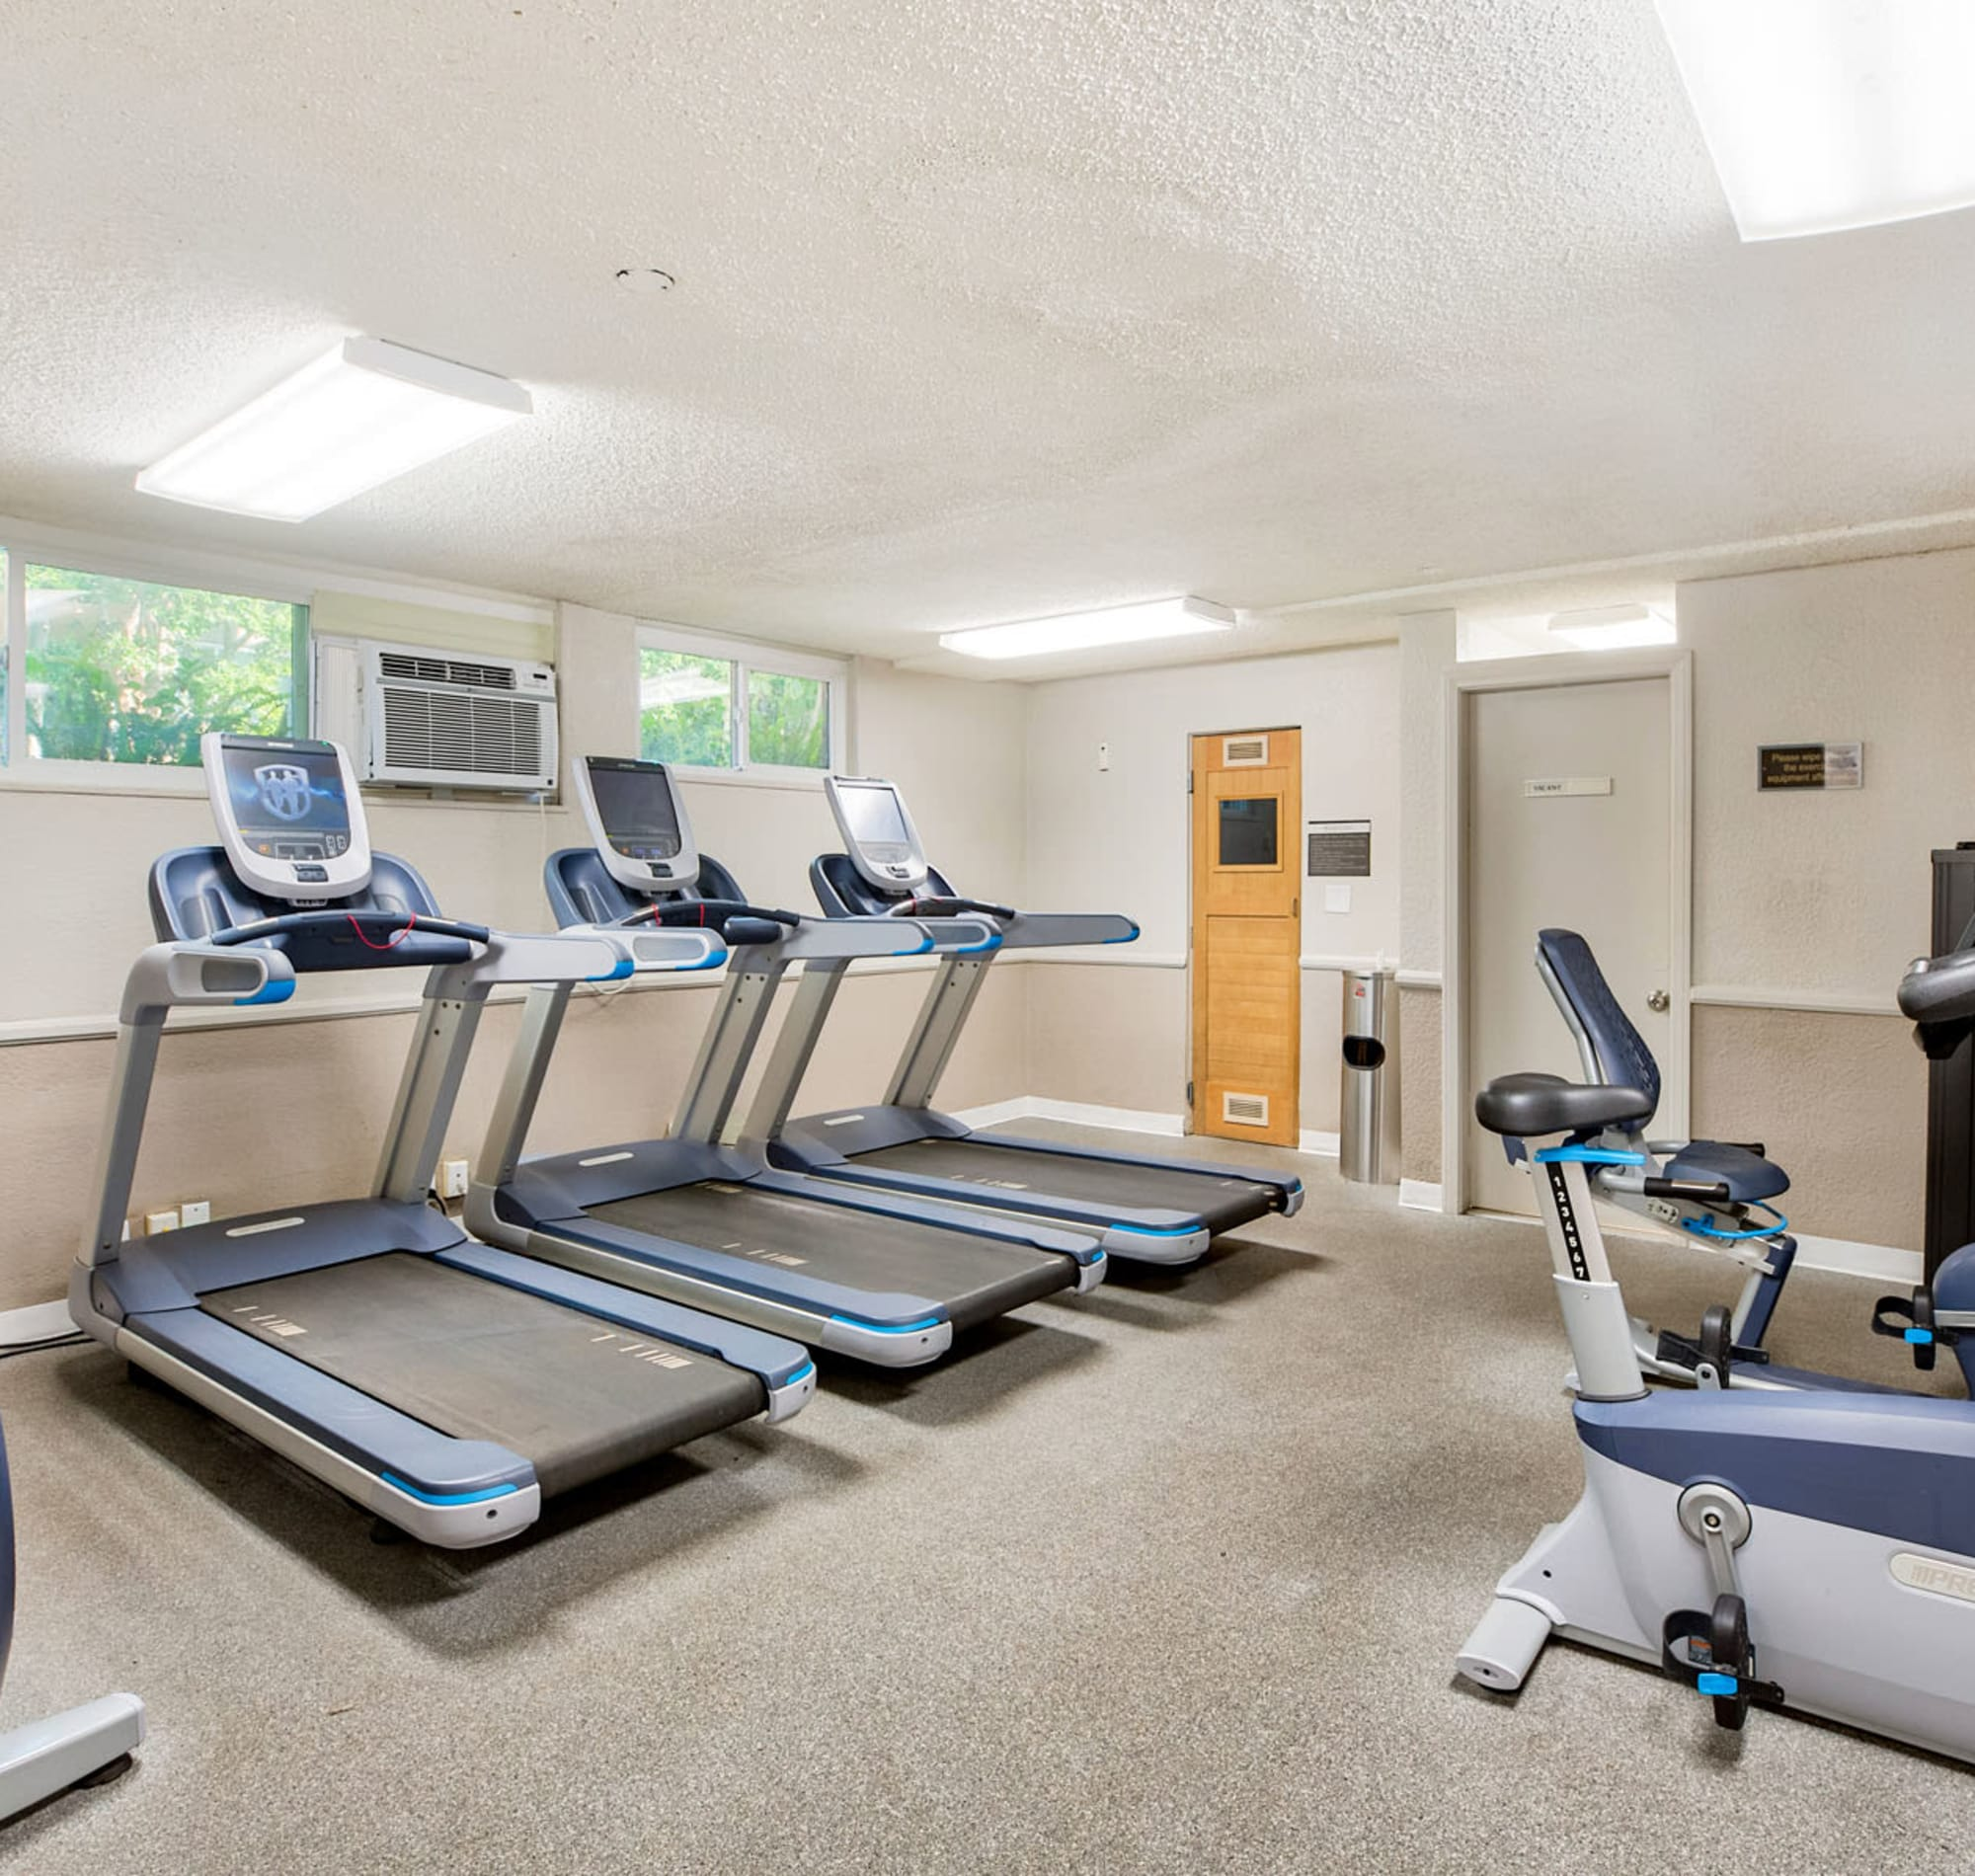 Well-equipped onsite fitness center with plenty of cardio equipment at Casa Granada in Los Angeles, California